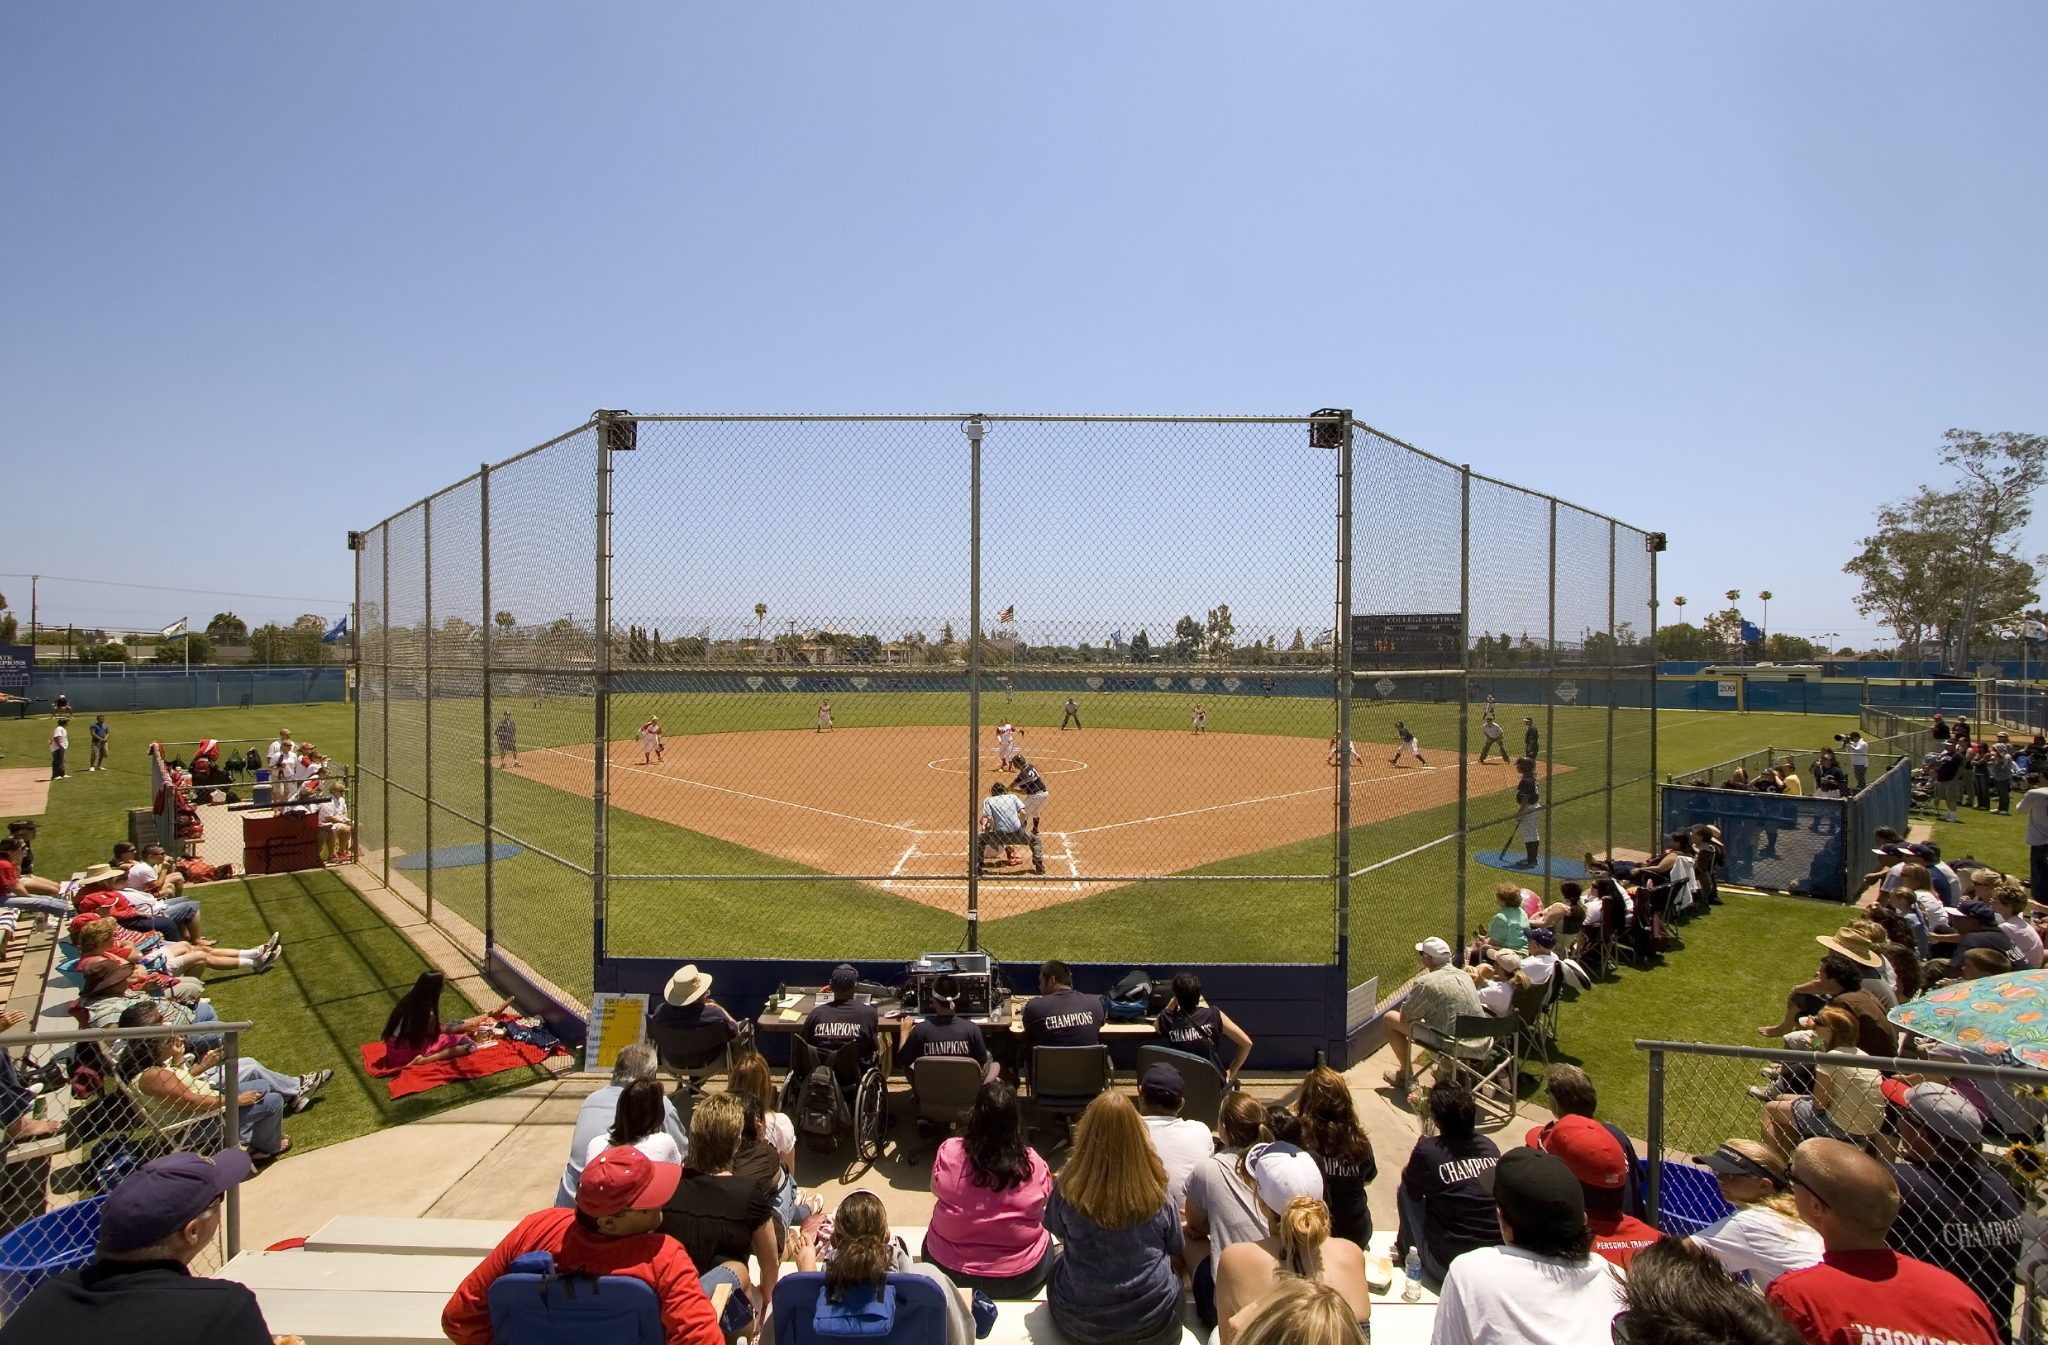 College Baseball and Sports Facilities Advisory